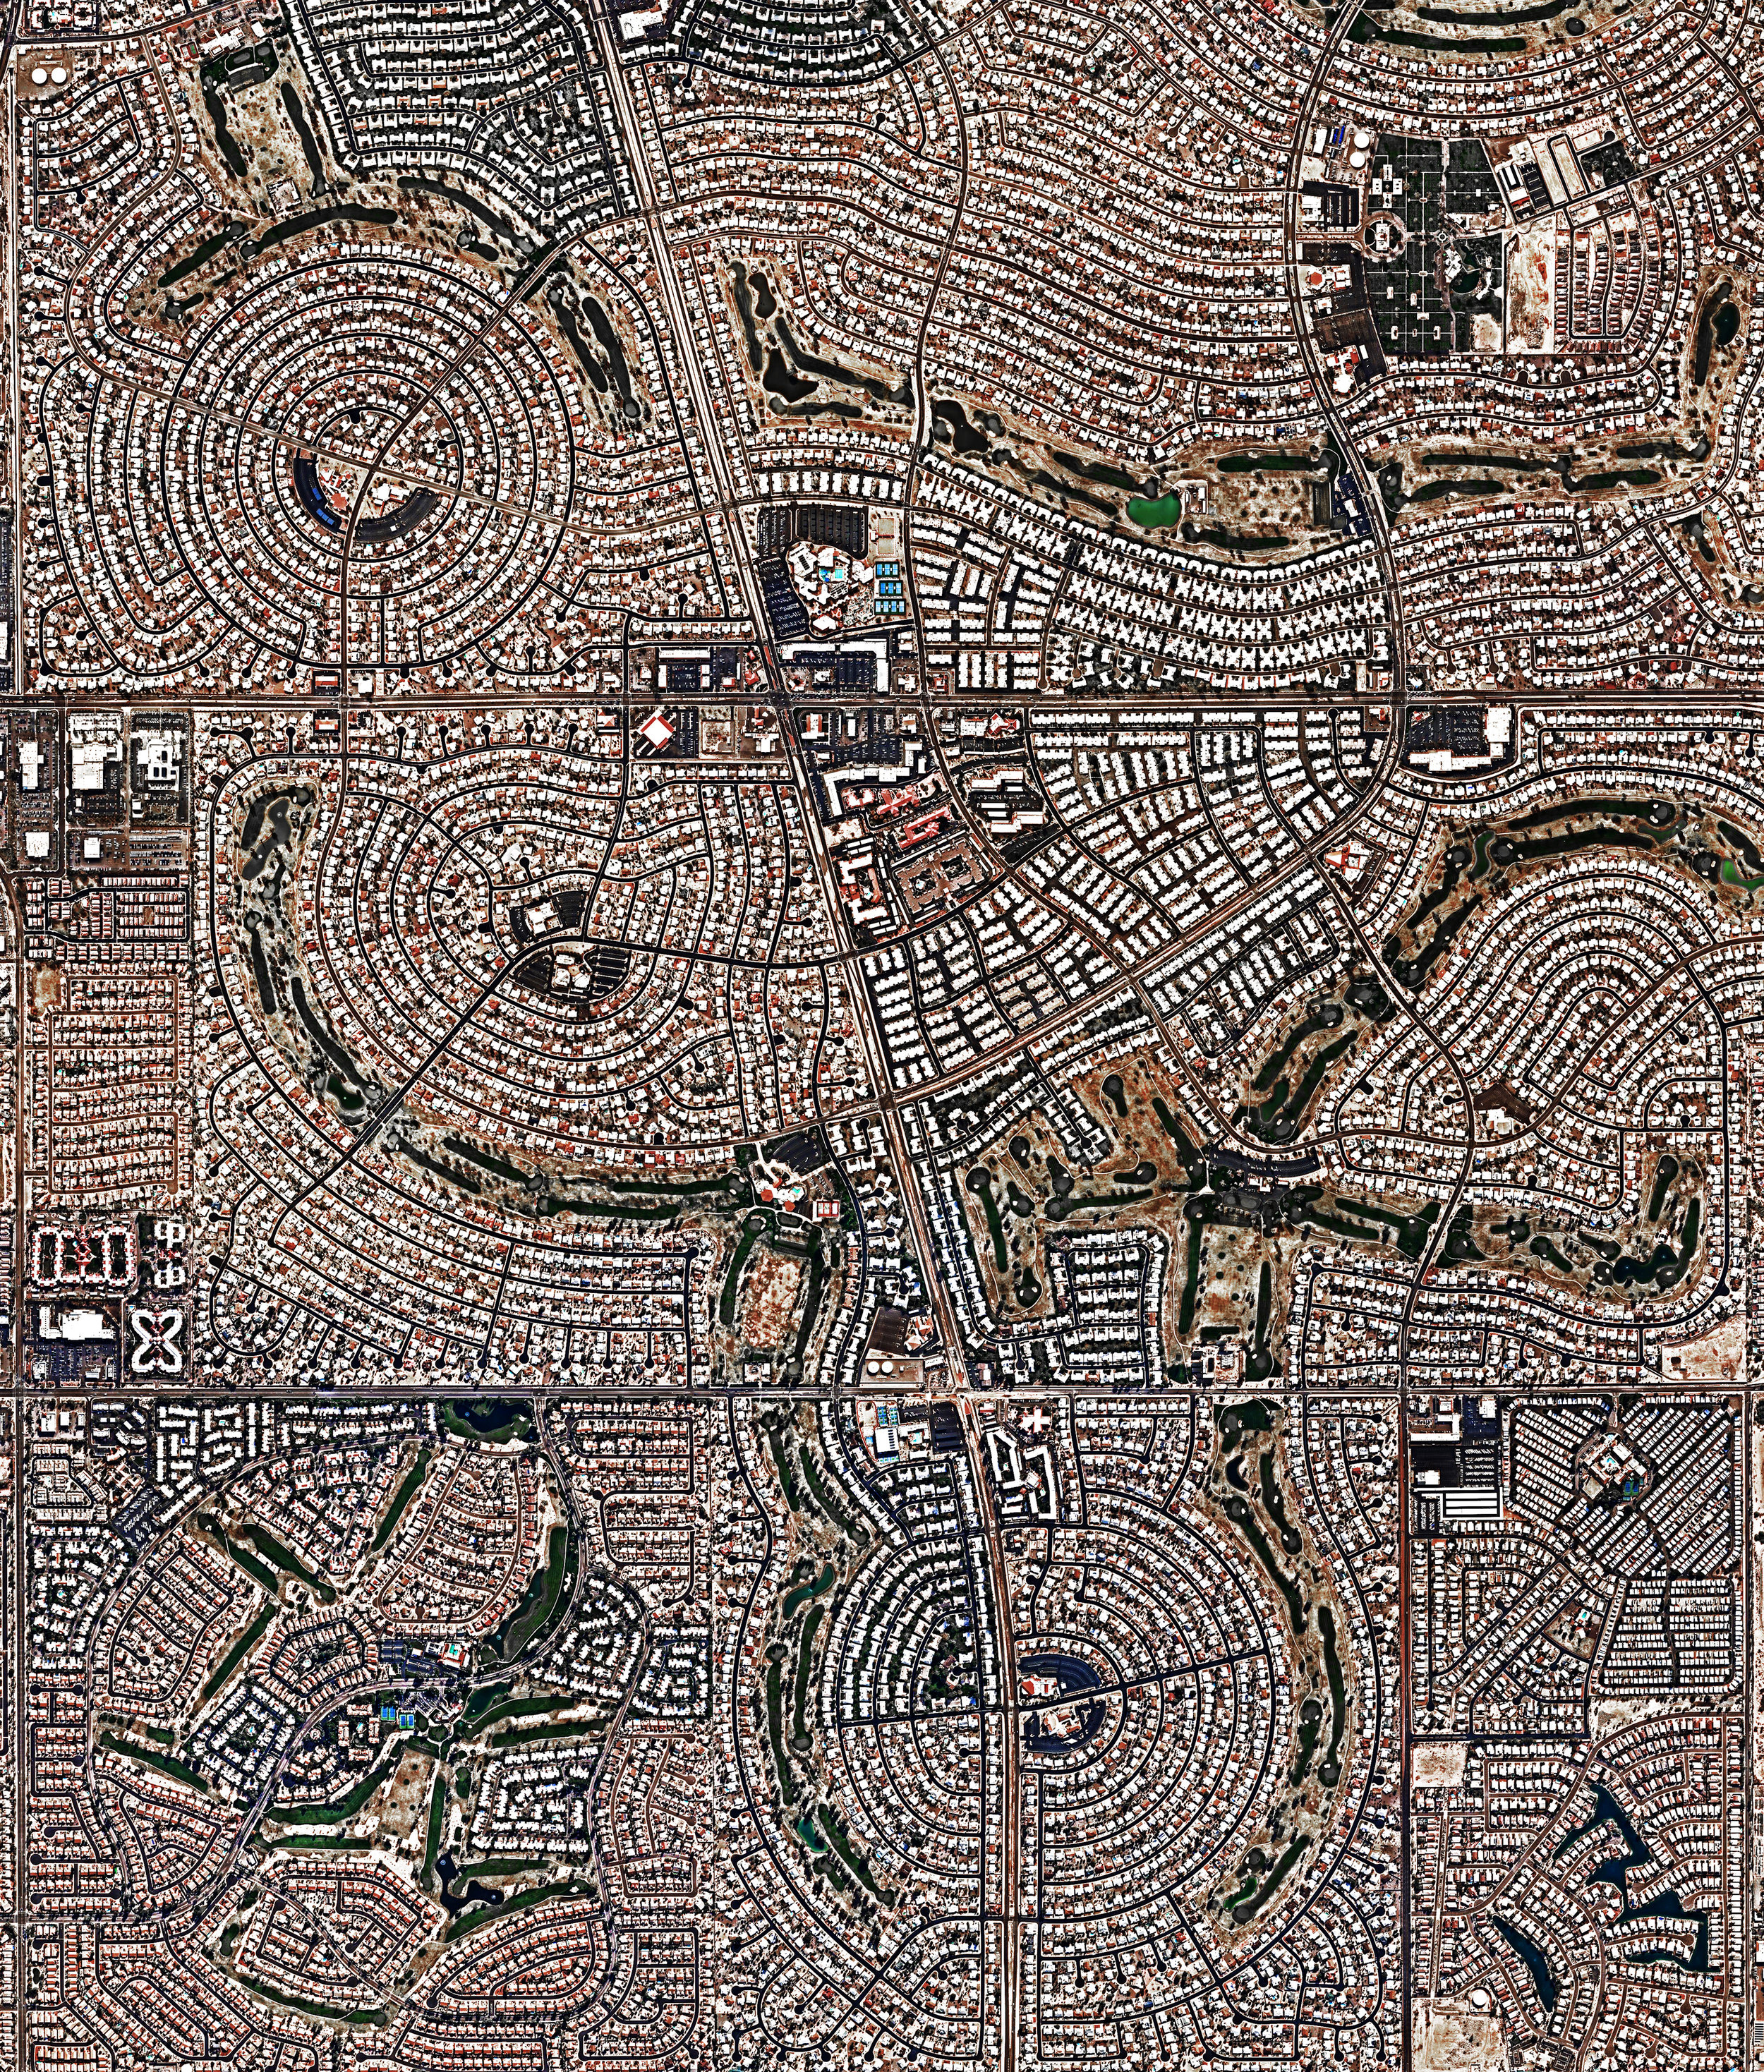 4/26/2017  Sun City  Sun City, Arizona, USA  33.624205, -112.285054  Sun City, Arizona, USA opened as a retirement community on January 1, 1960. That day, more than 100,000 people showed up to see the new development, resulting in a cover story in Time magazine. The community was built on the old ghost town of Marinette and covers 14.6 square miles. Today, Sun City has a population of roughly 37,000 people.  Source imagery: NearMap